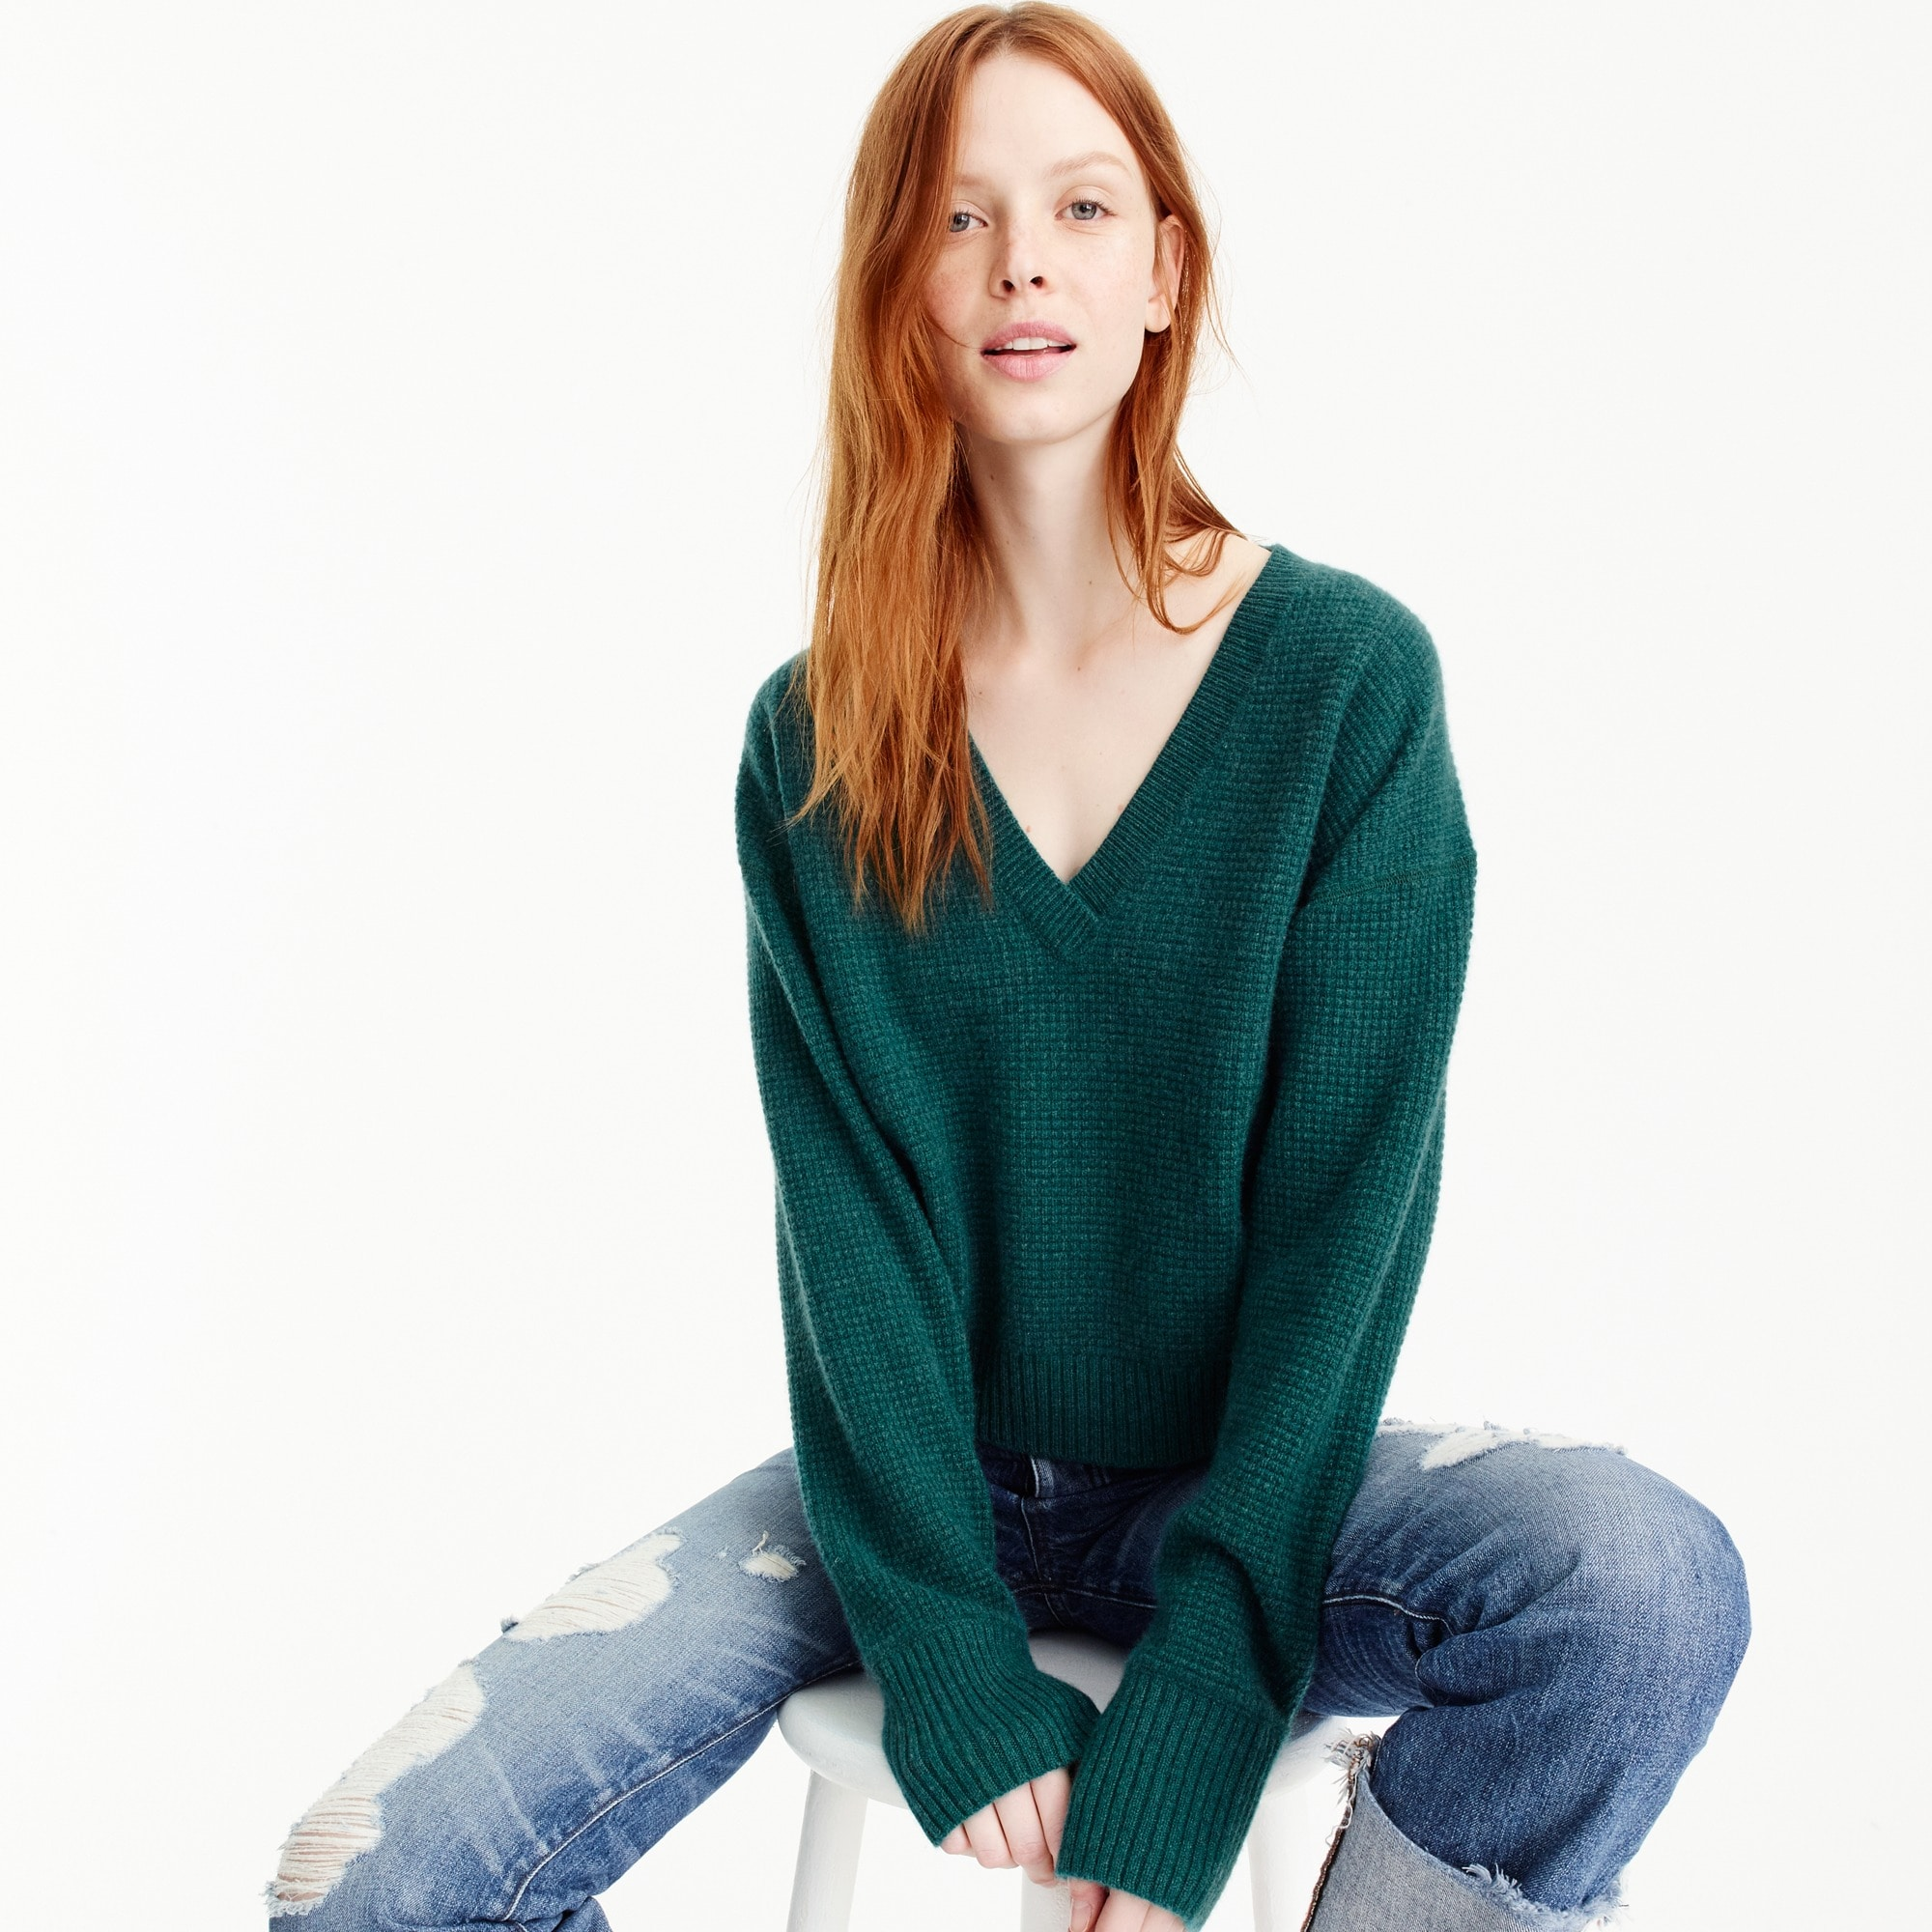 Image 1 for Cropped thermal V-neck sweater in everyday cashmere